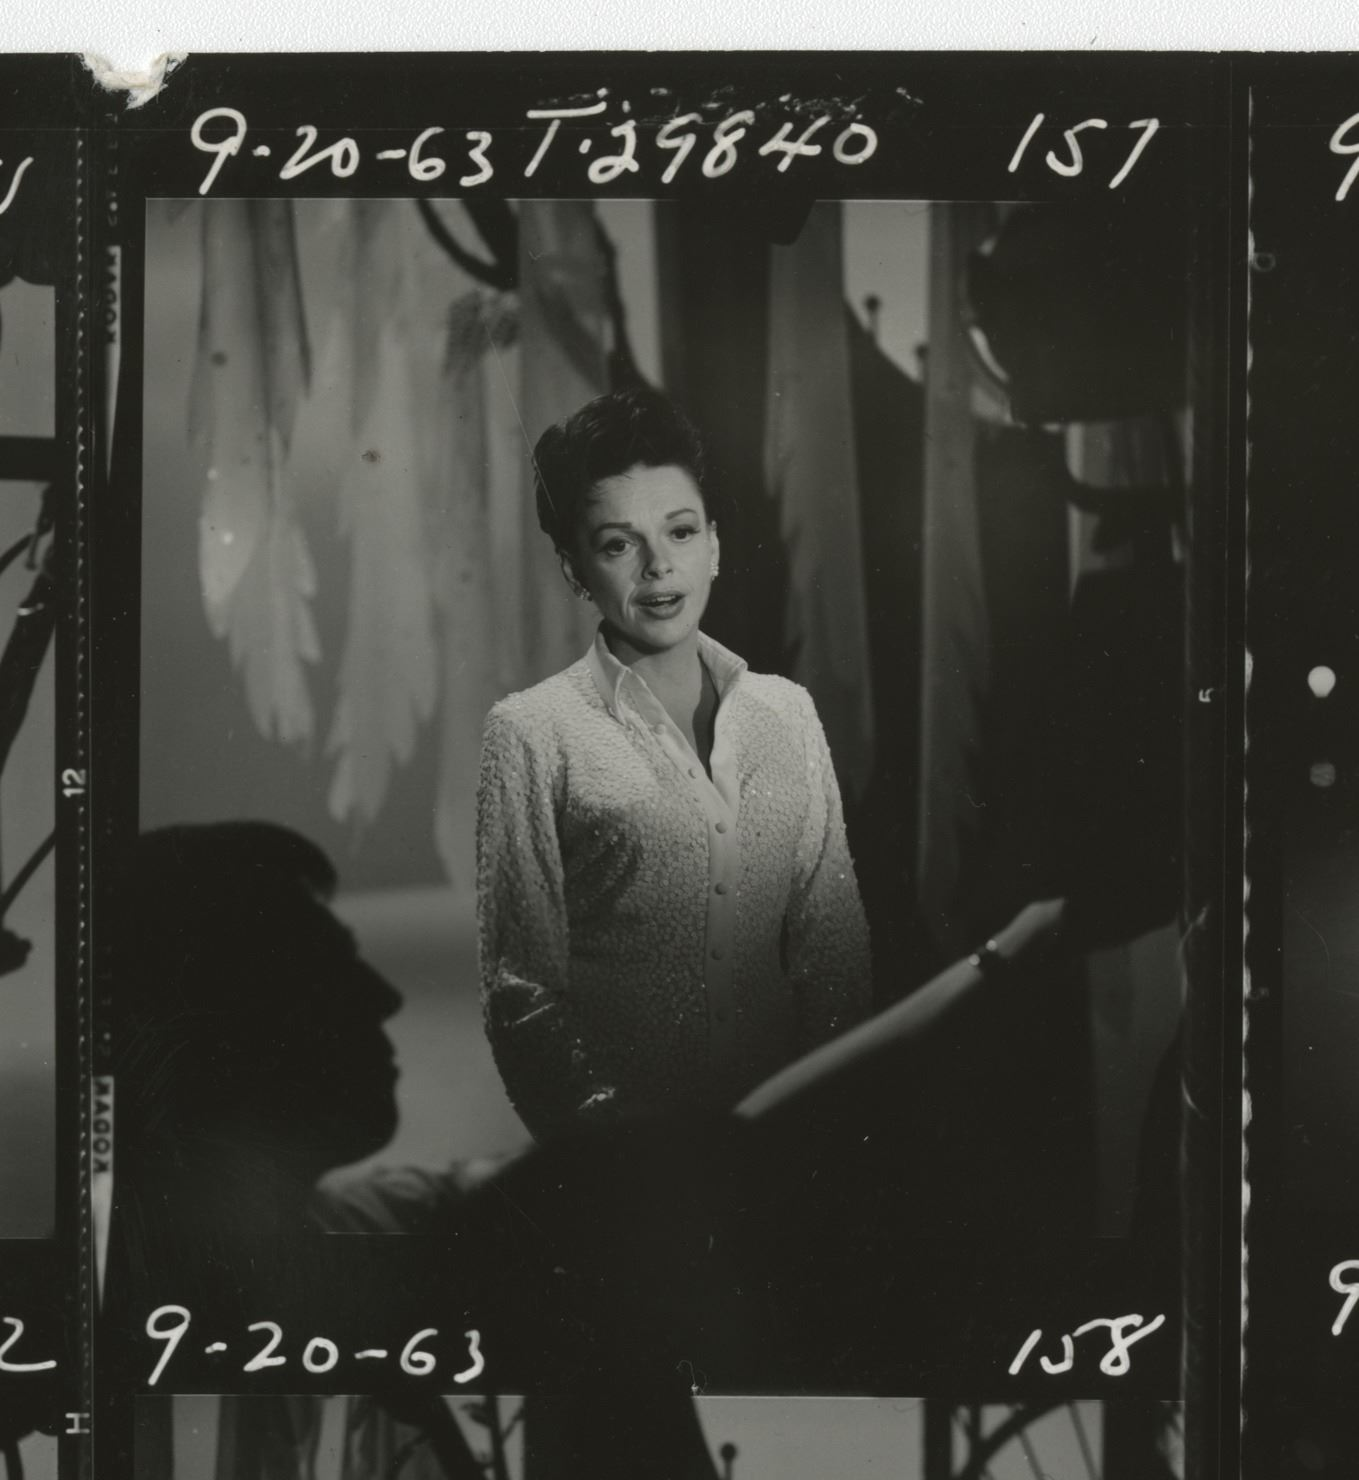 The Judy Garland Show (33) behind-the-scenes contact sheets.